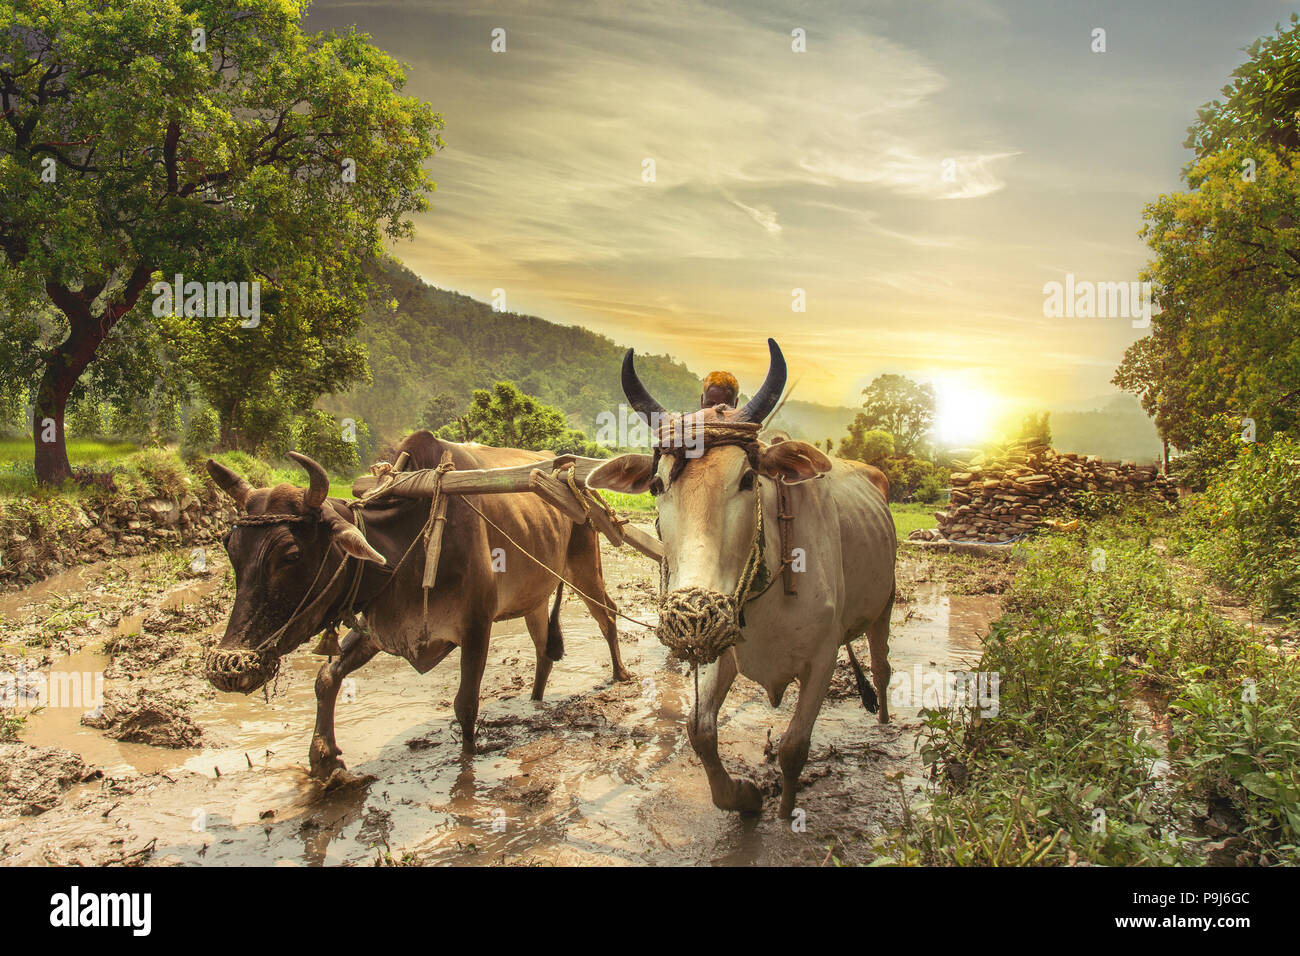 Indian farmer plowing rice fields with a pair of oxen using traditional plough at sunrise. - Stock Image